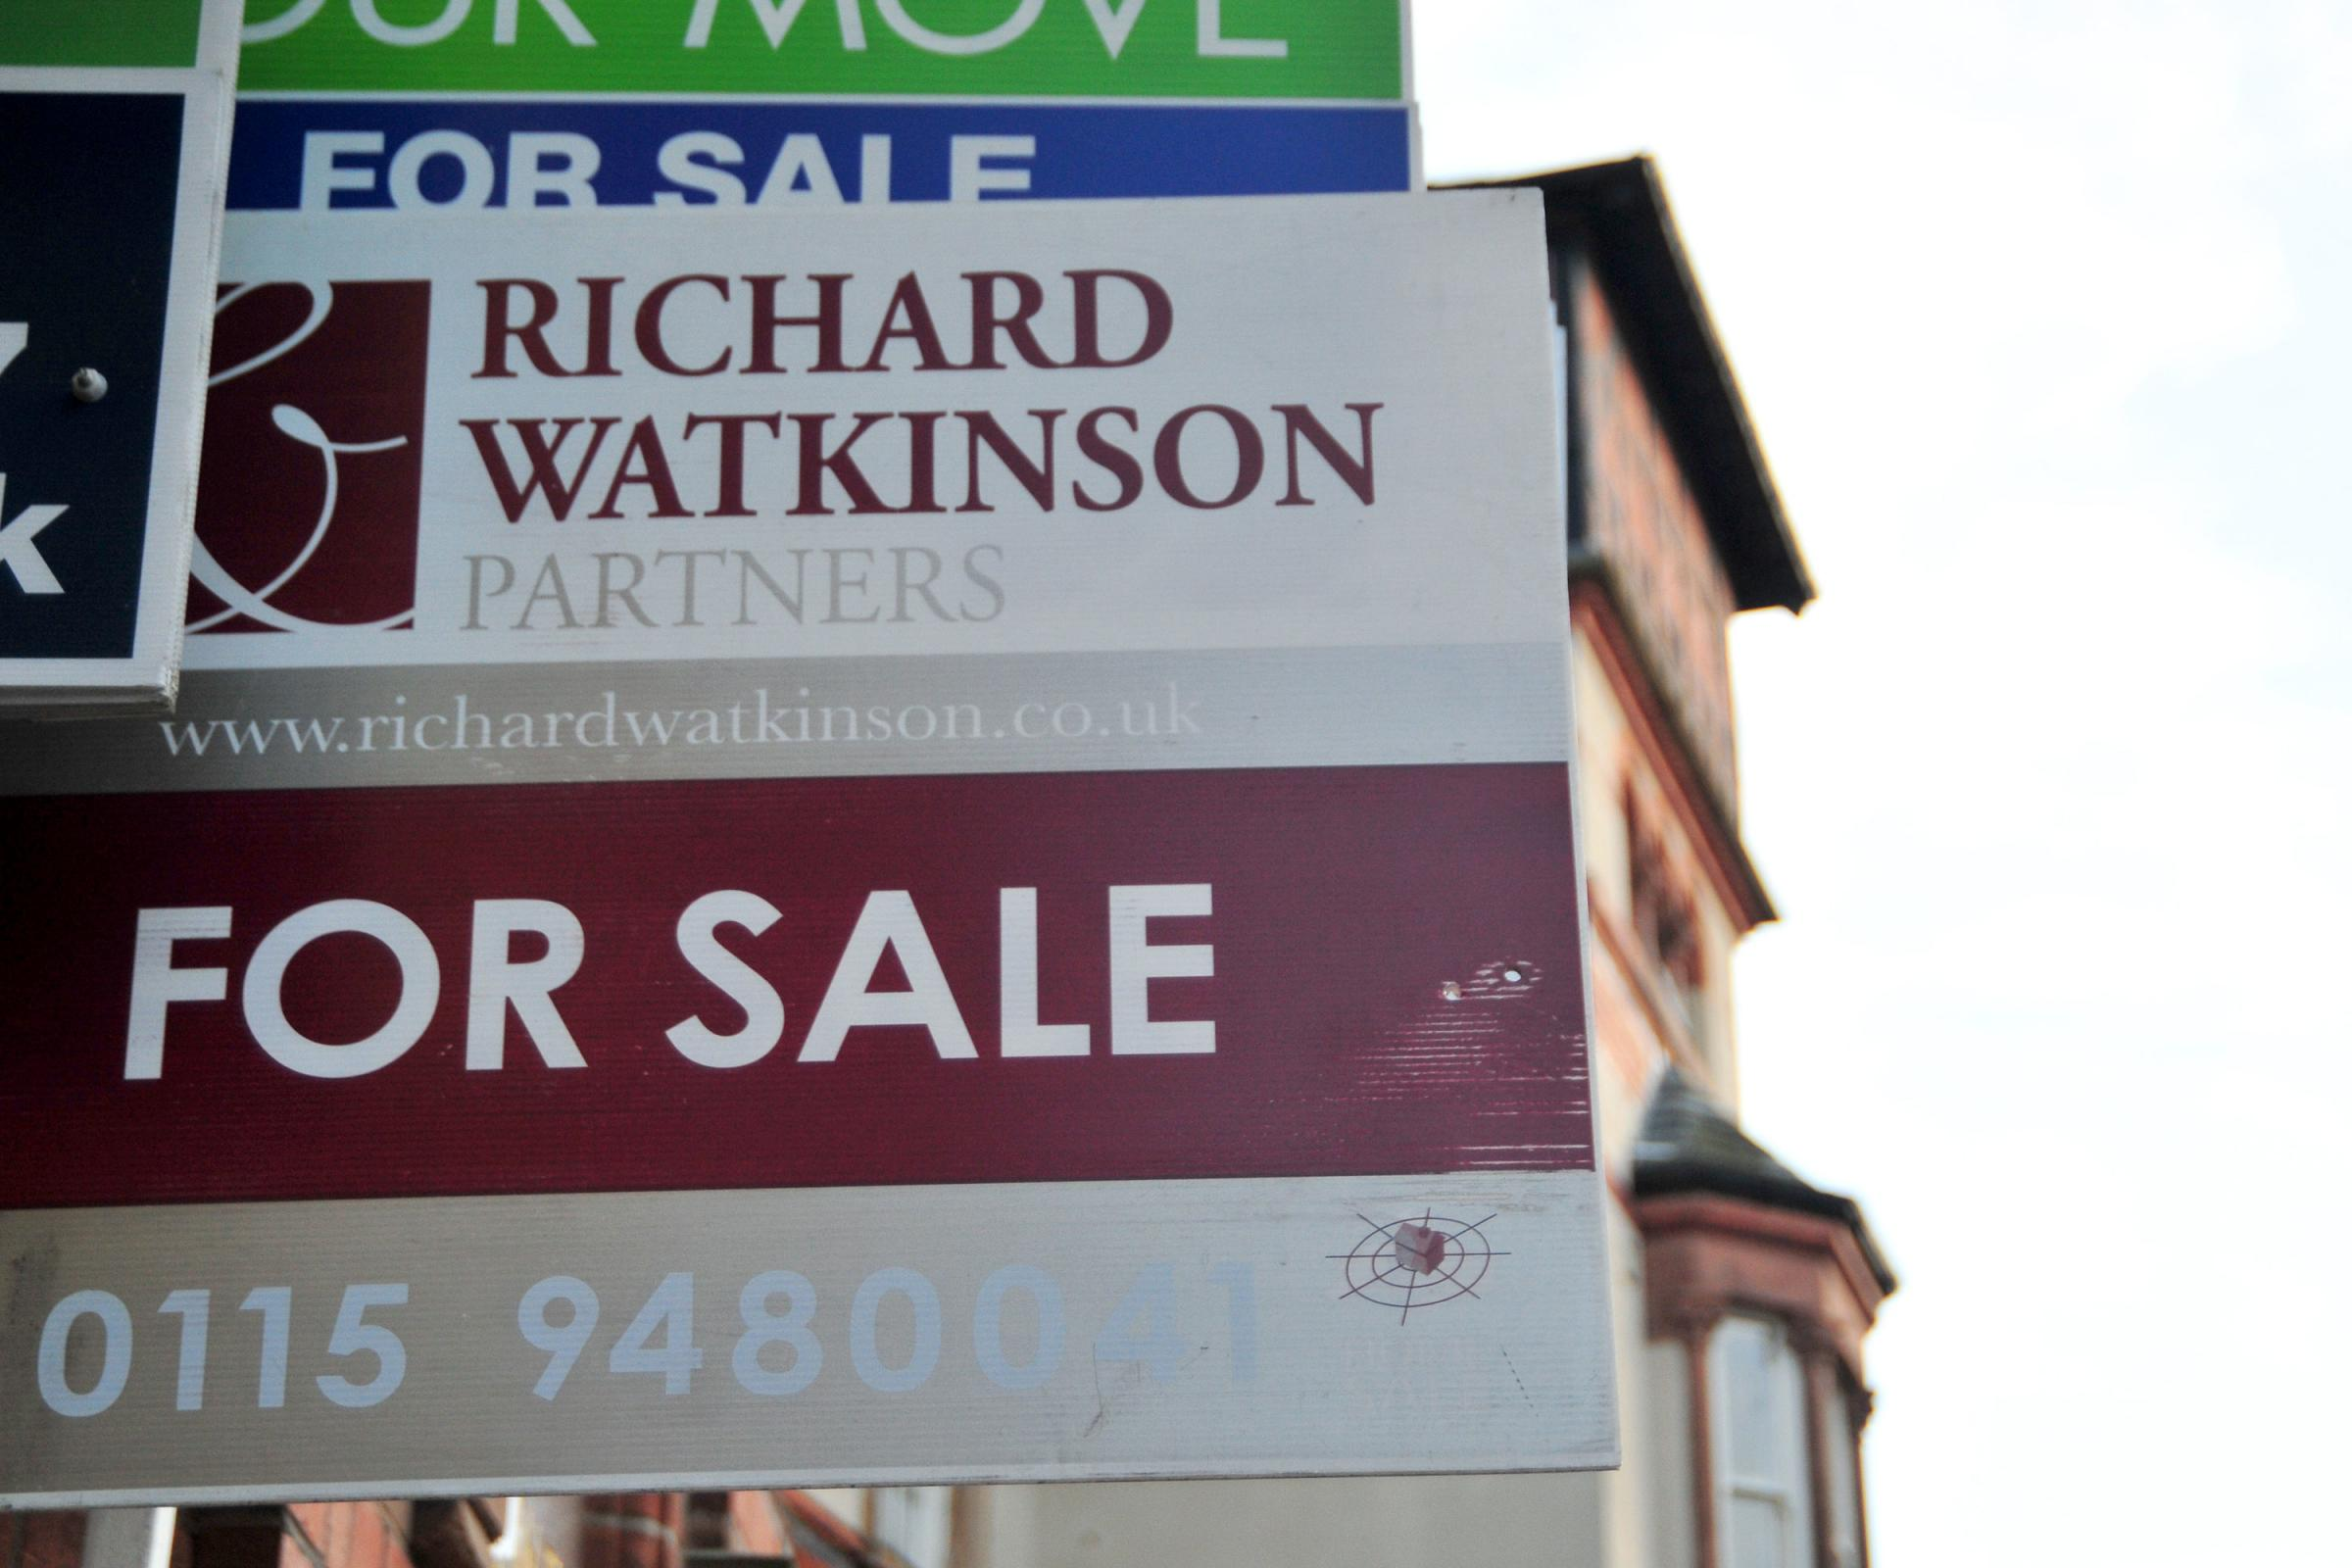 HOUSE PRICES: The average Oldham house price in January was £161,610, Land Registry figures show – a 2.7 per cent increase on December.